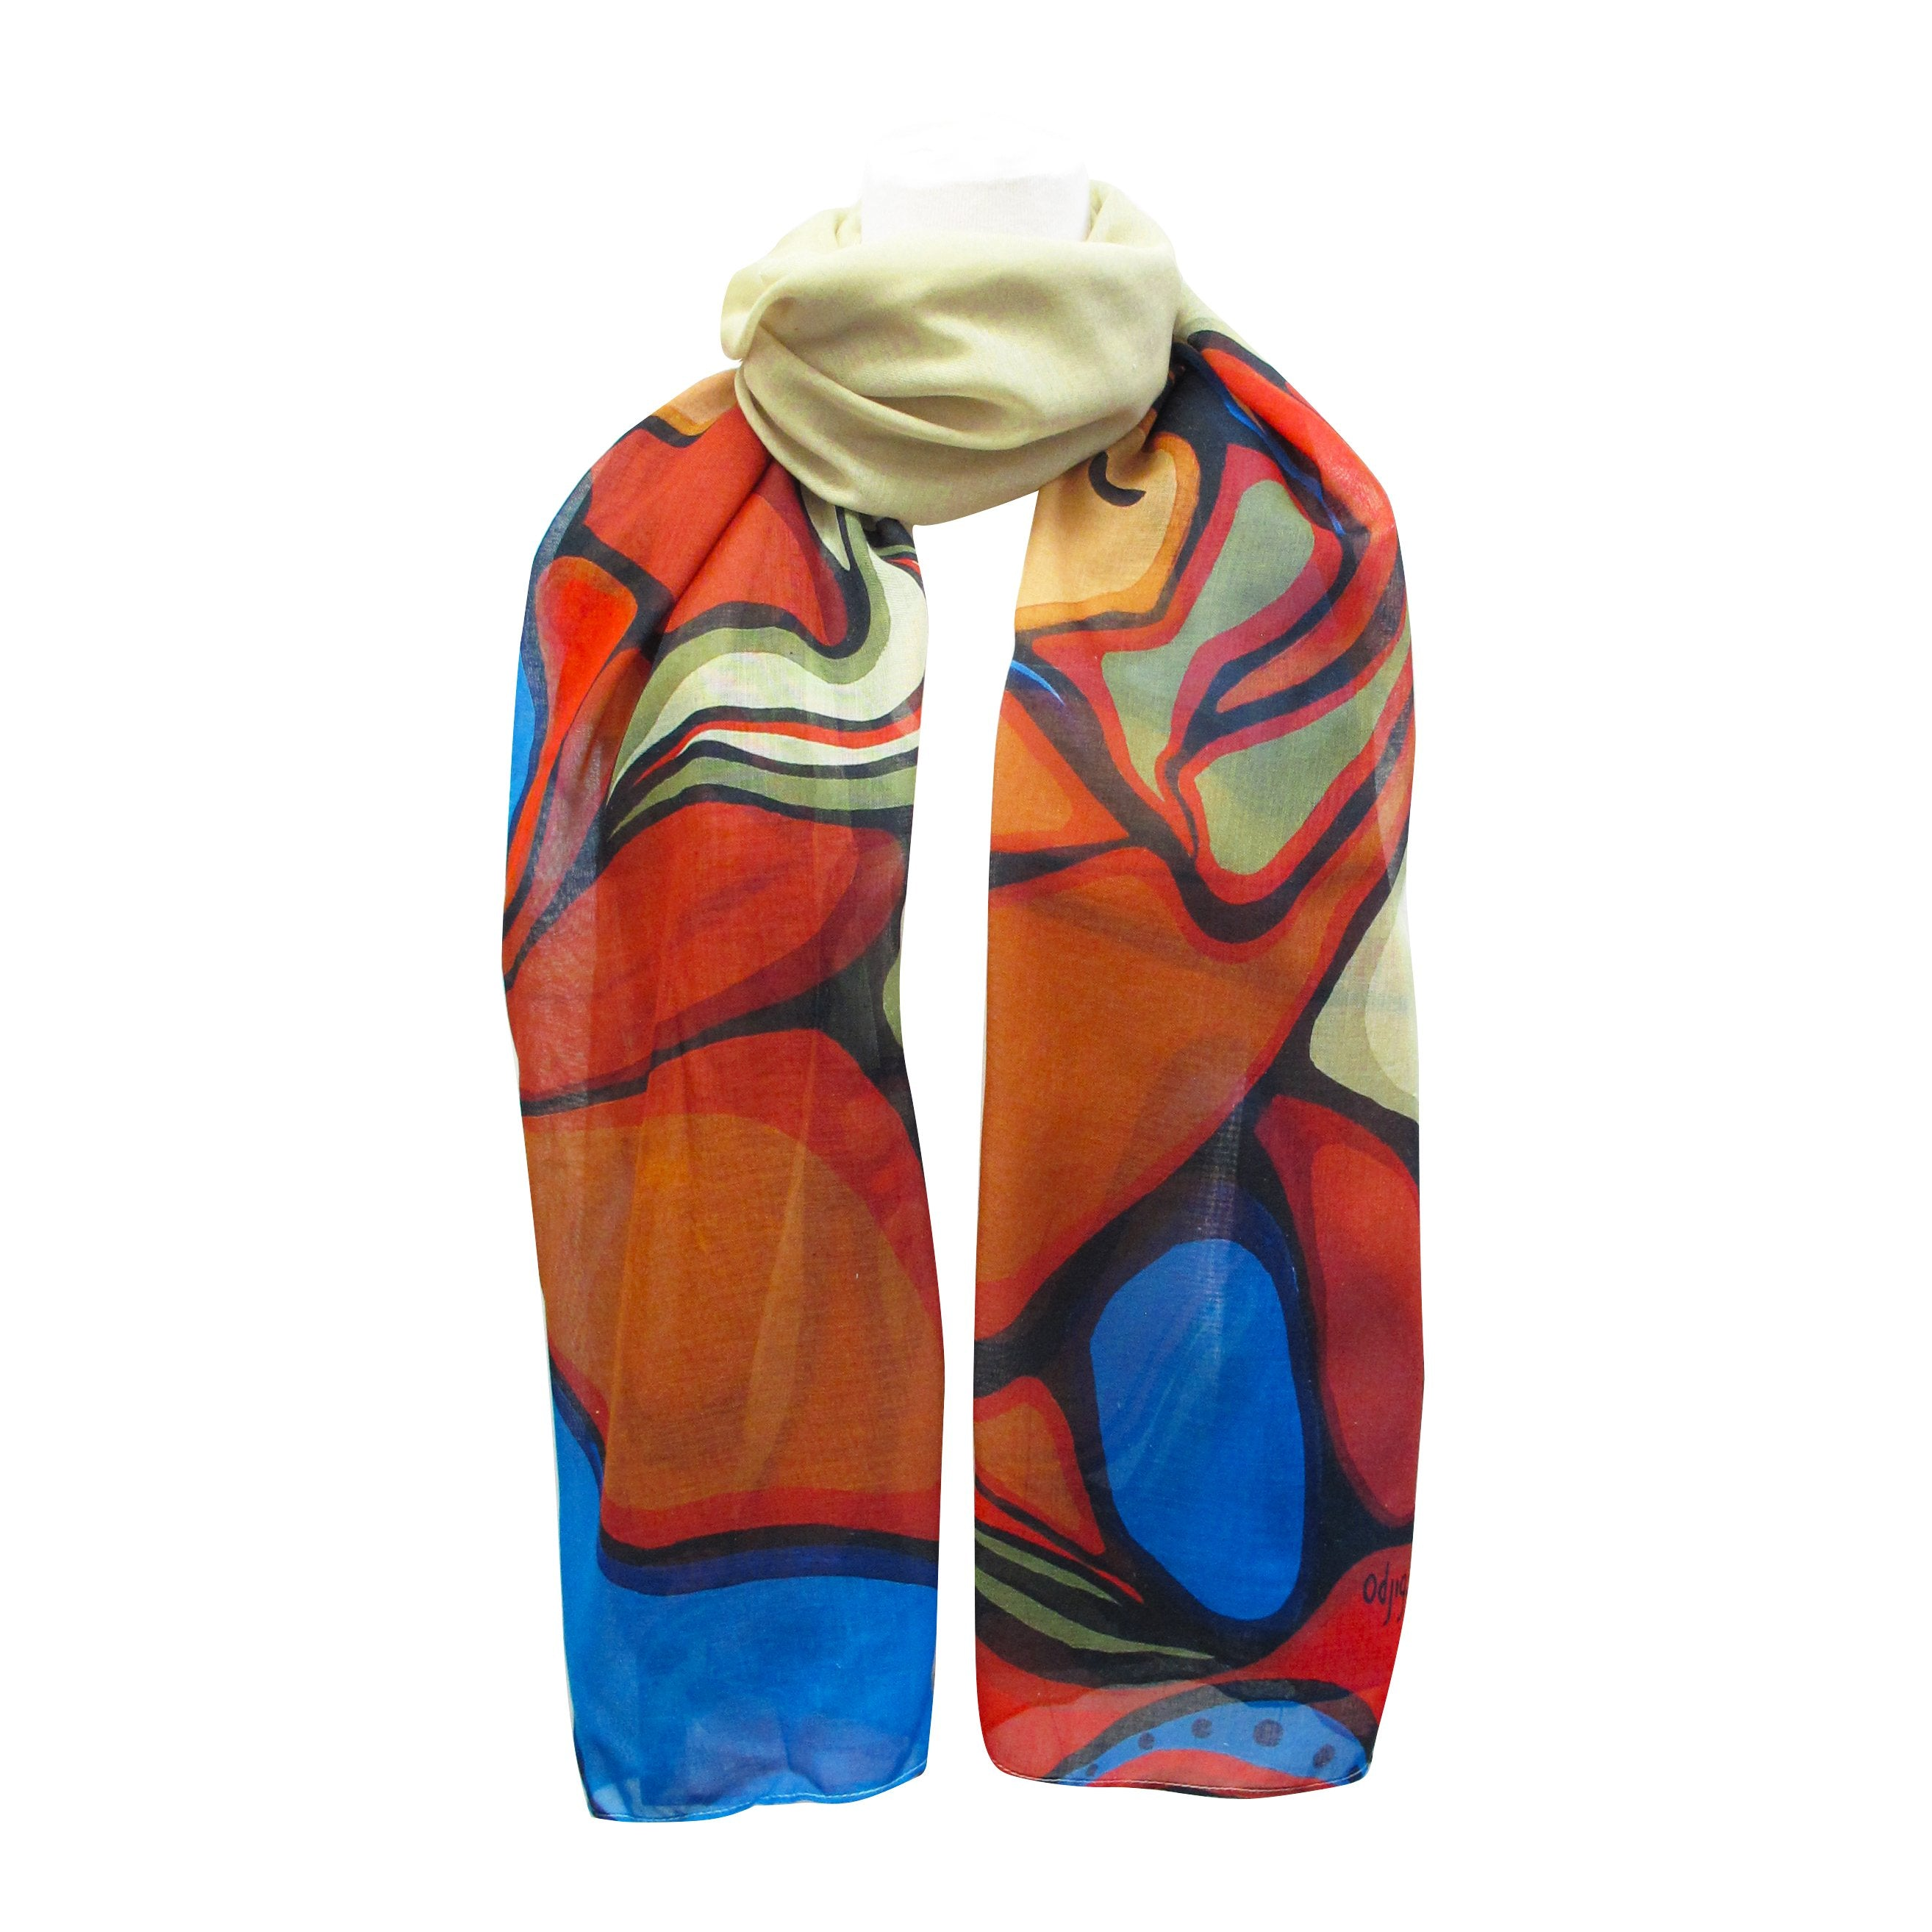 Daphne Odjig Moment of Commitment Artist Scarf